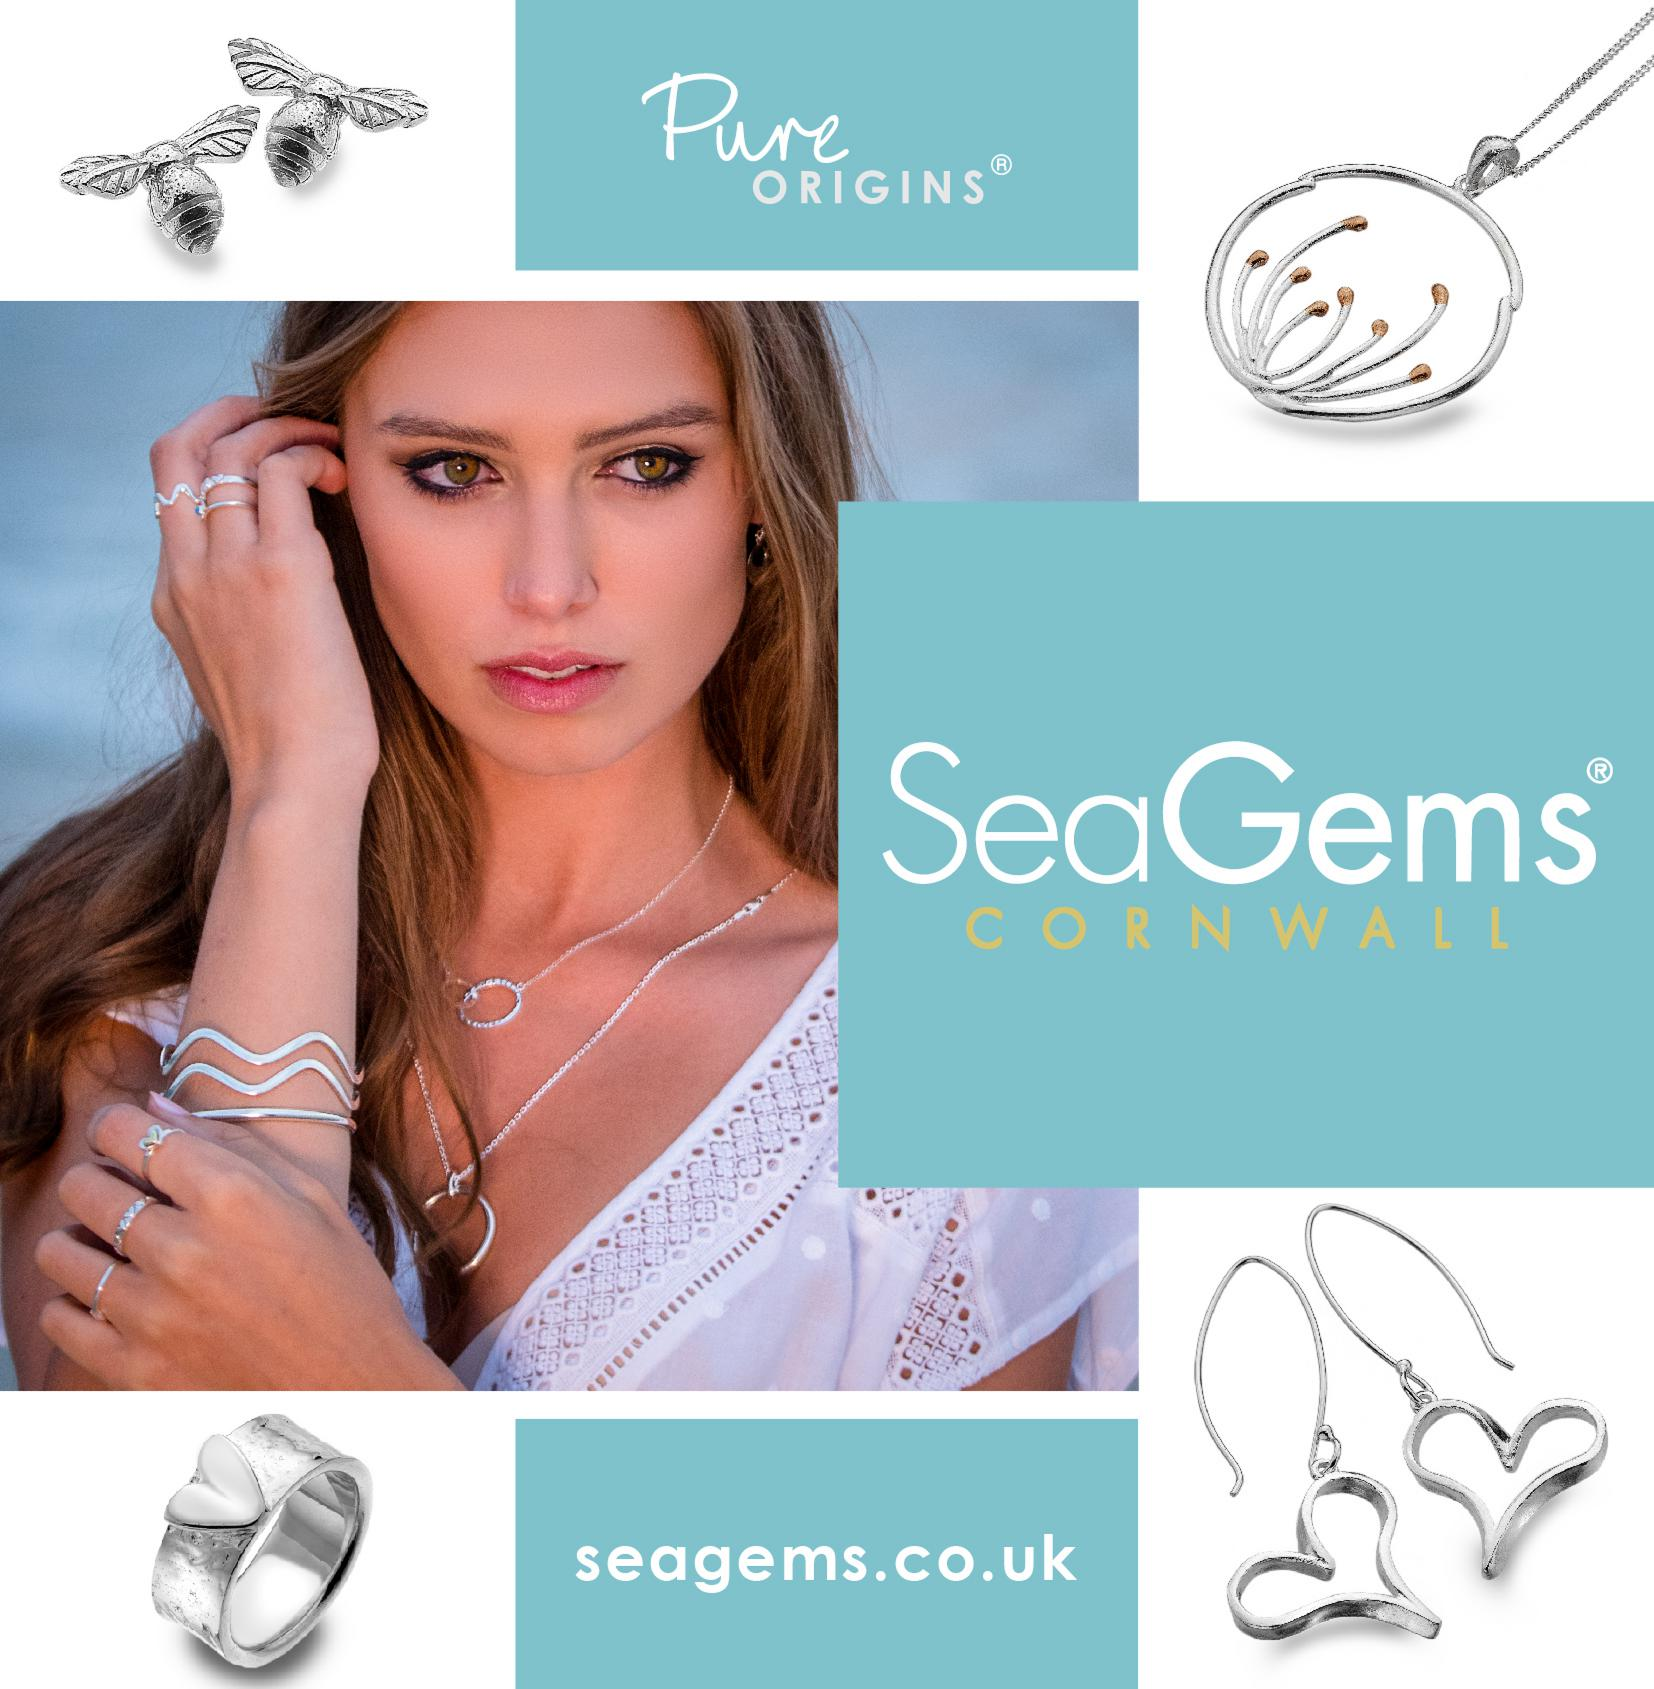 Sea Gems Ltd